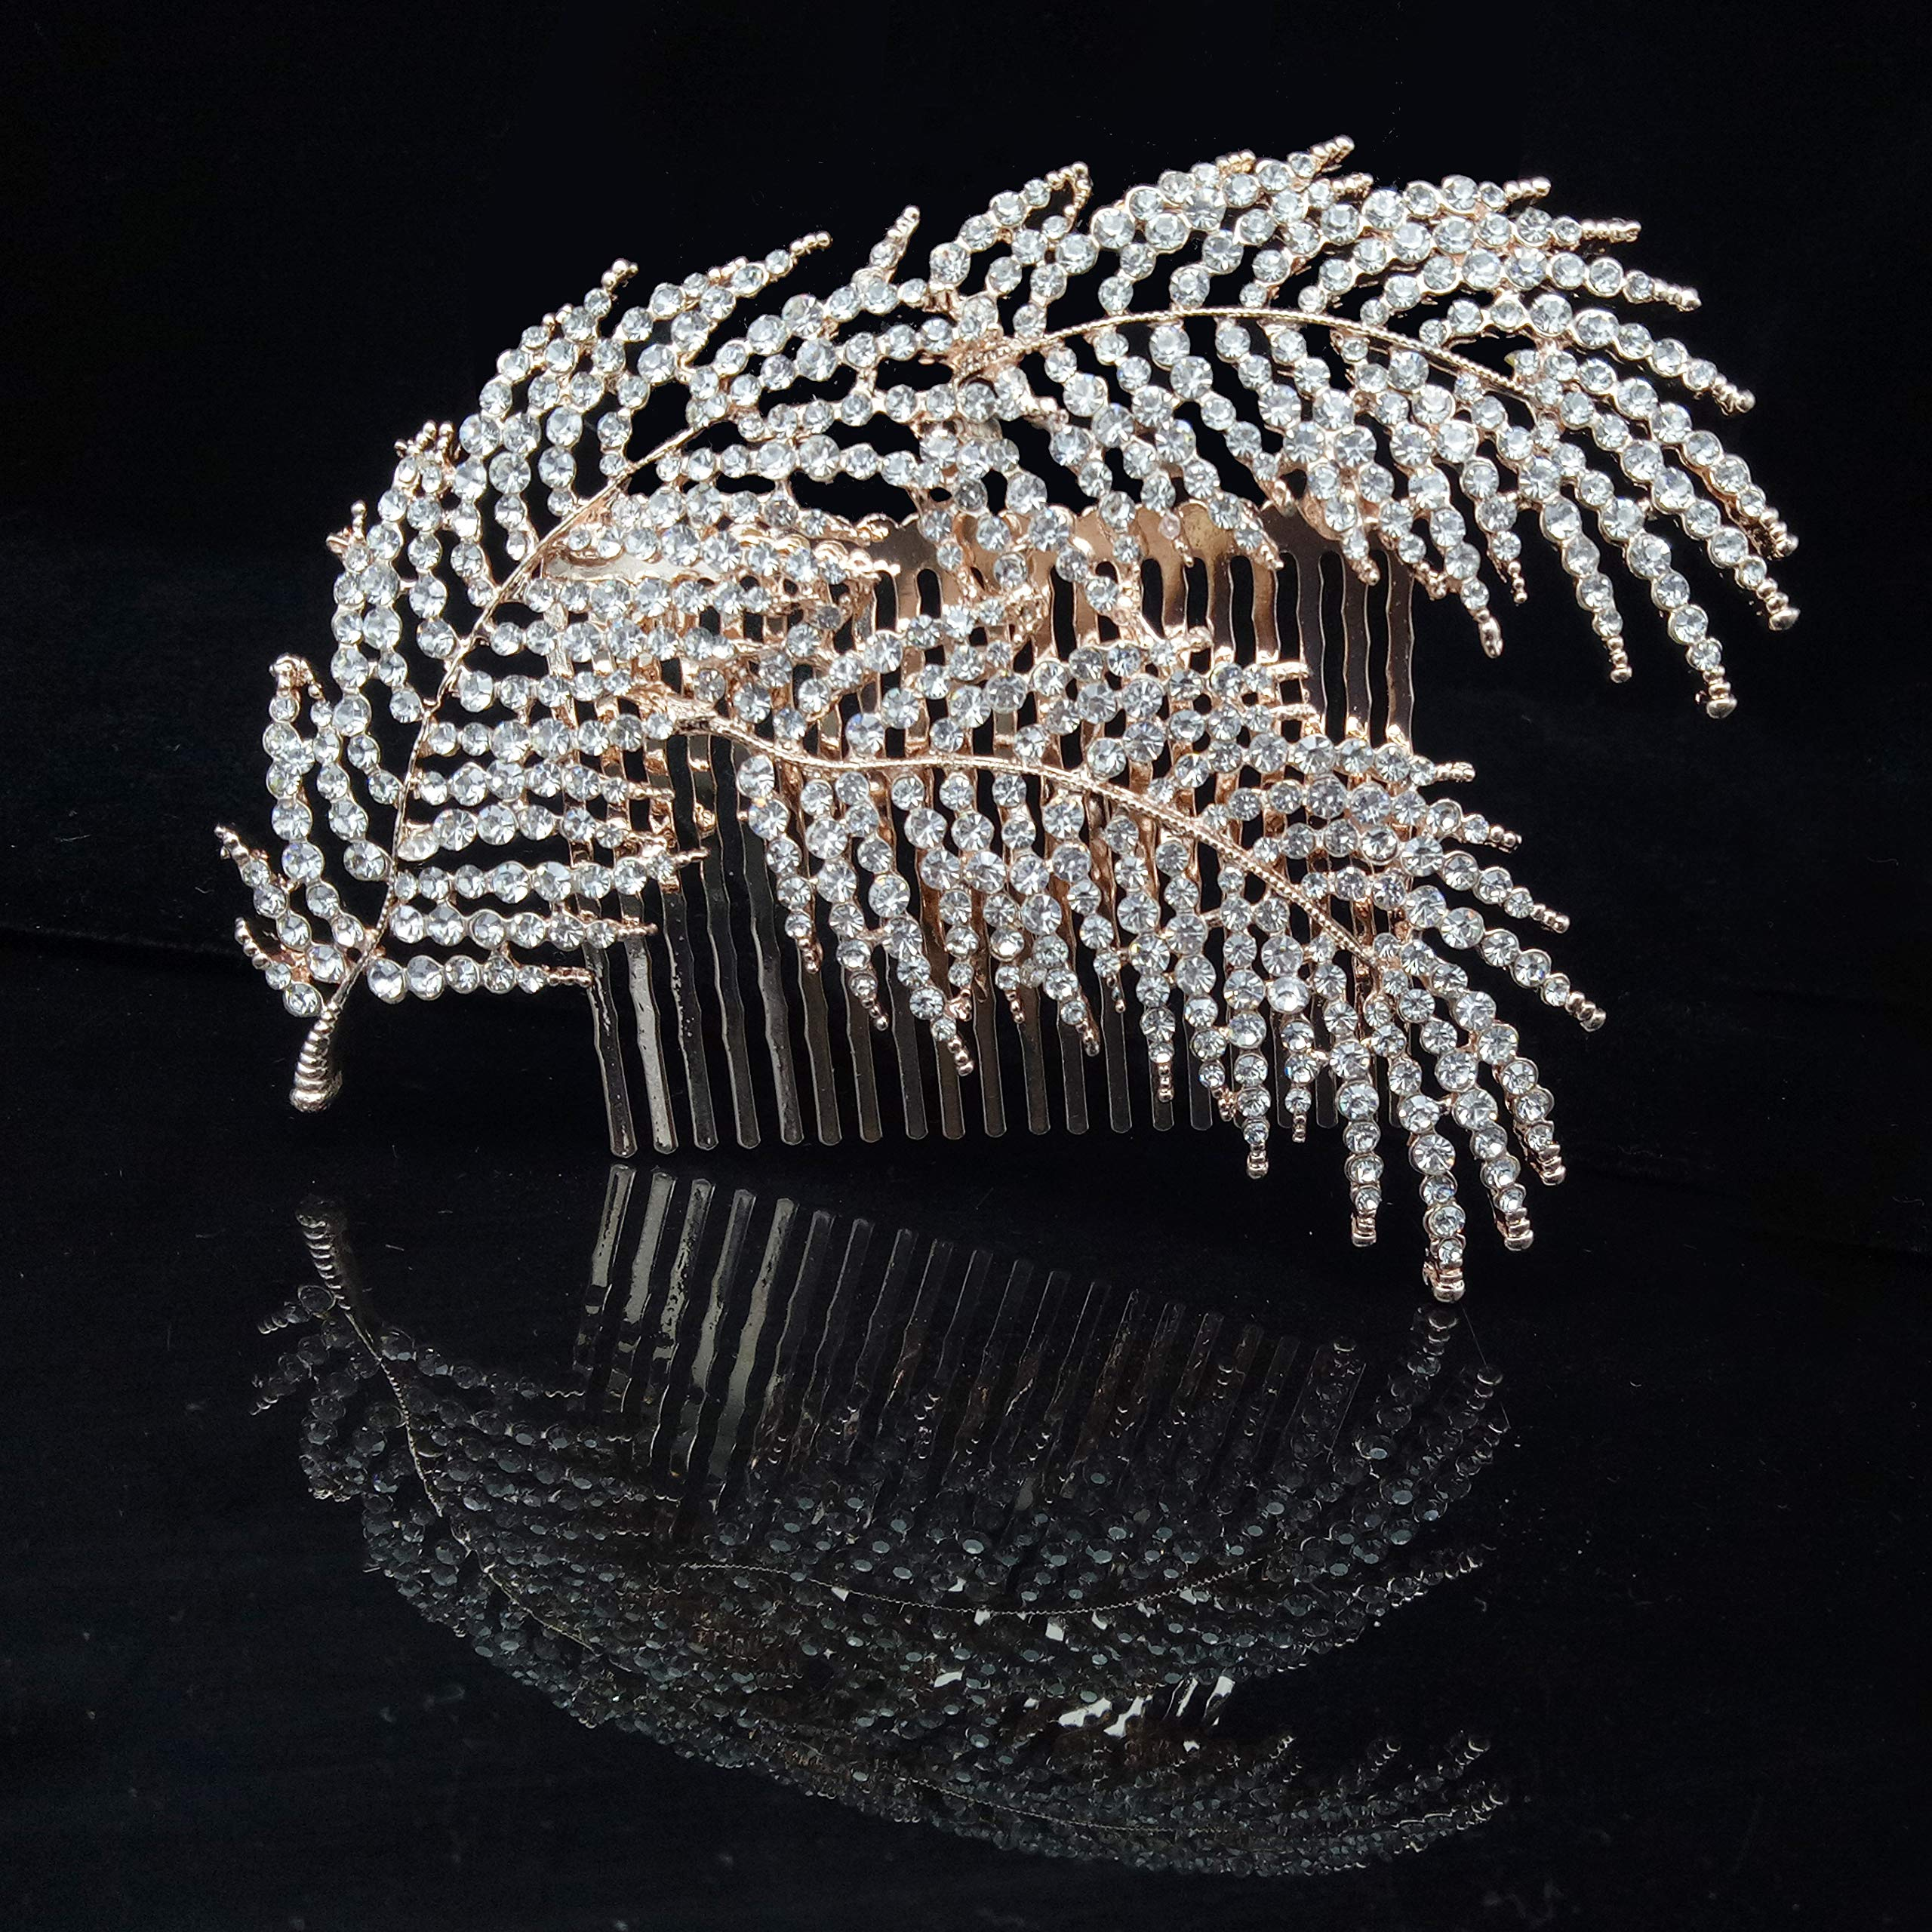 Wedding Crystal Rhinestones Hair Combs Clips Decorative Leaves Bridal Headpiece Hair Accessories for Brides, Rose gold by JER Fashion